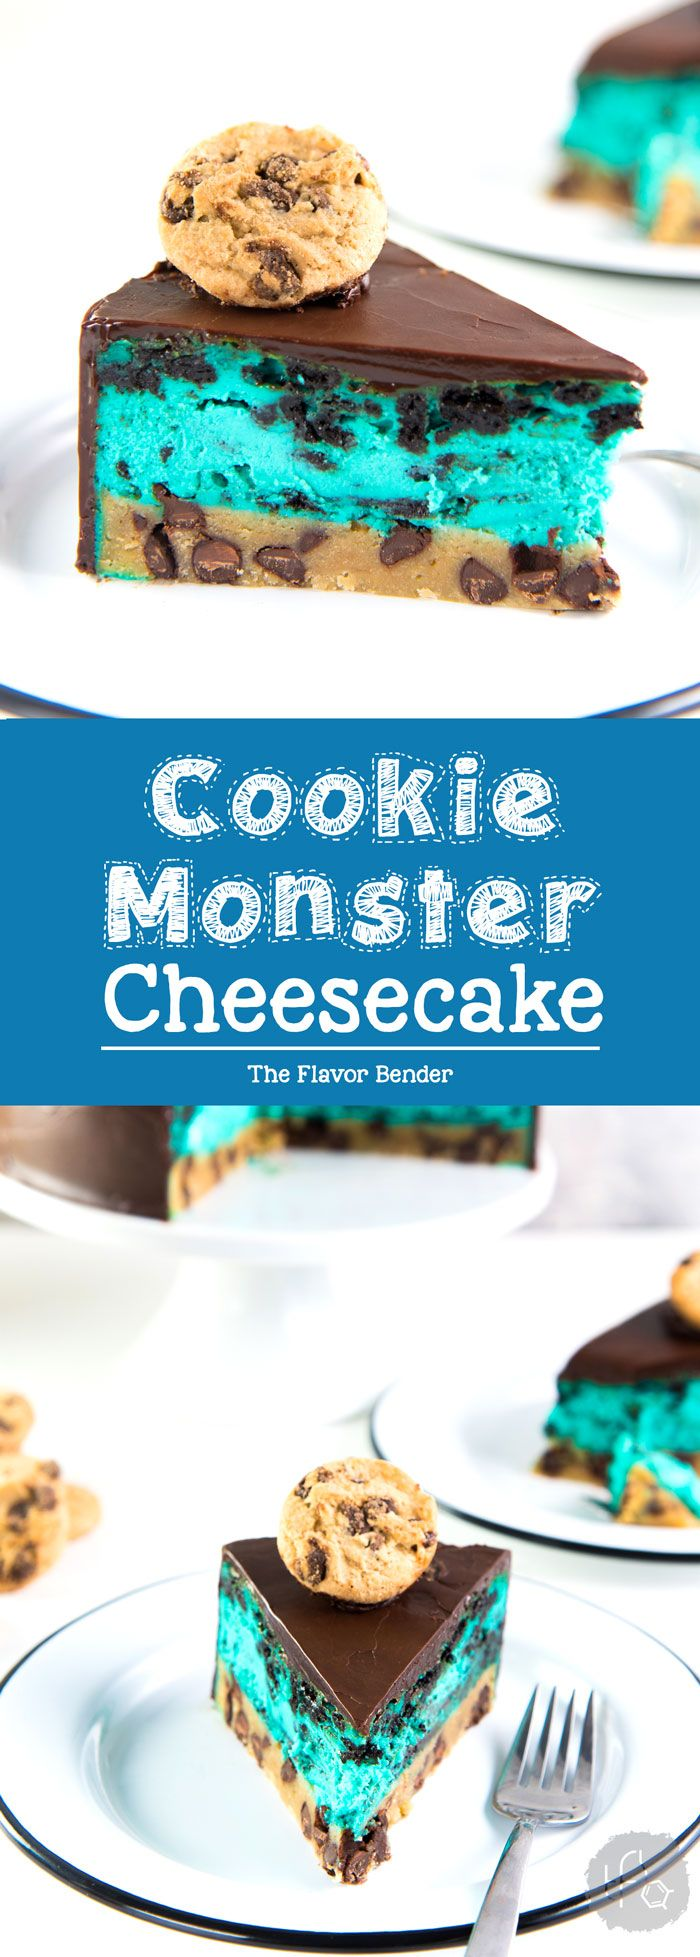 Cookie Monster Cheesecake - A fudgy chewy chocolate chip cookie blondie, topped with a creamy cookie and cream cheesecake loaded with Oreos and coated with a layer of chocolate ganache. Perfect dessert for cookie lovers. From the Secret Layer Cakes cookbook. #Cheesecake #SecretLayerCakes #CookiesandCream #Blondie via @theflavorbender